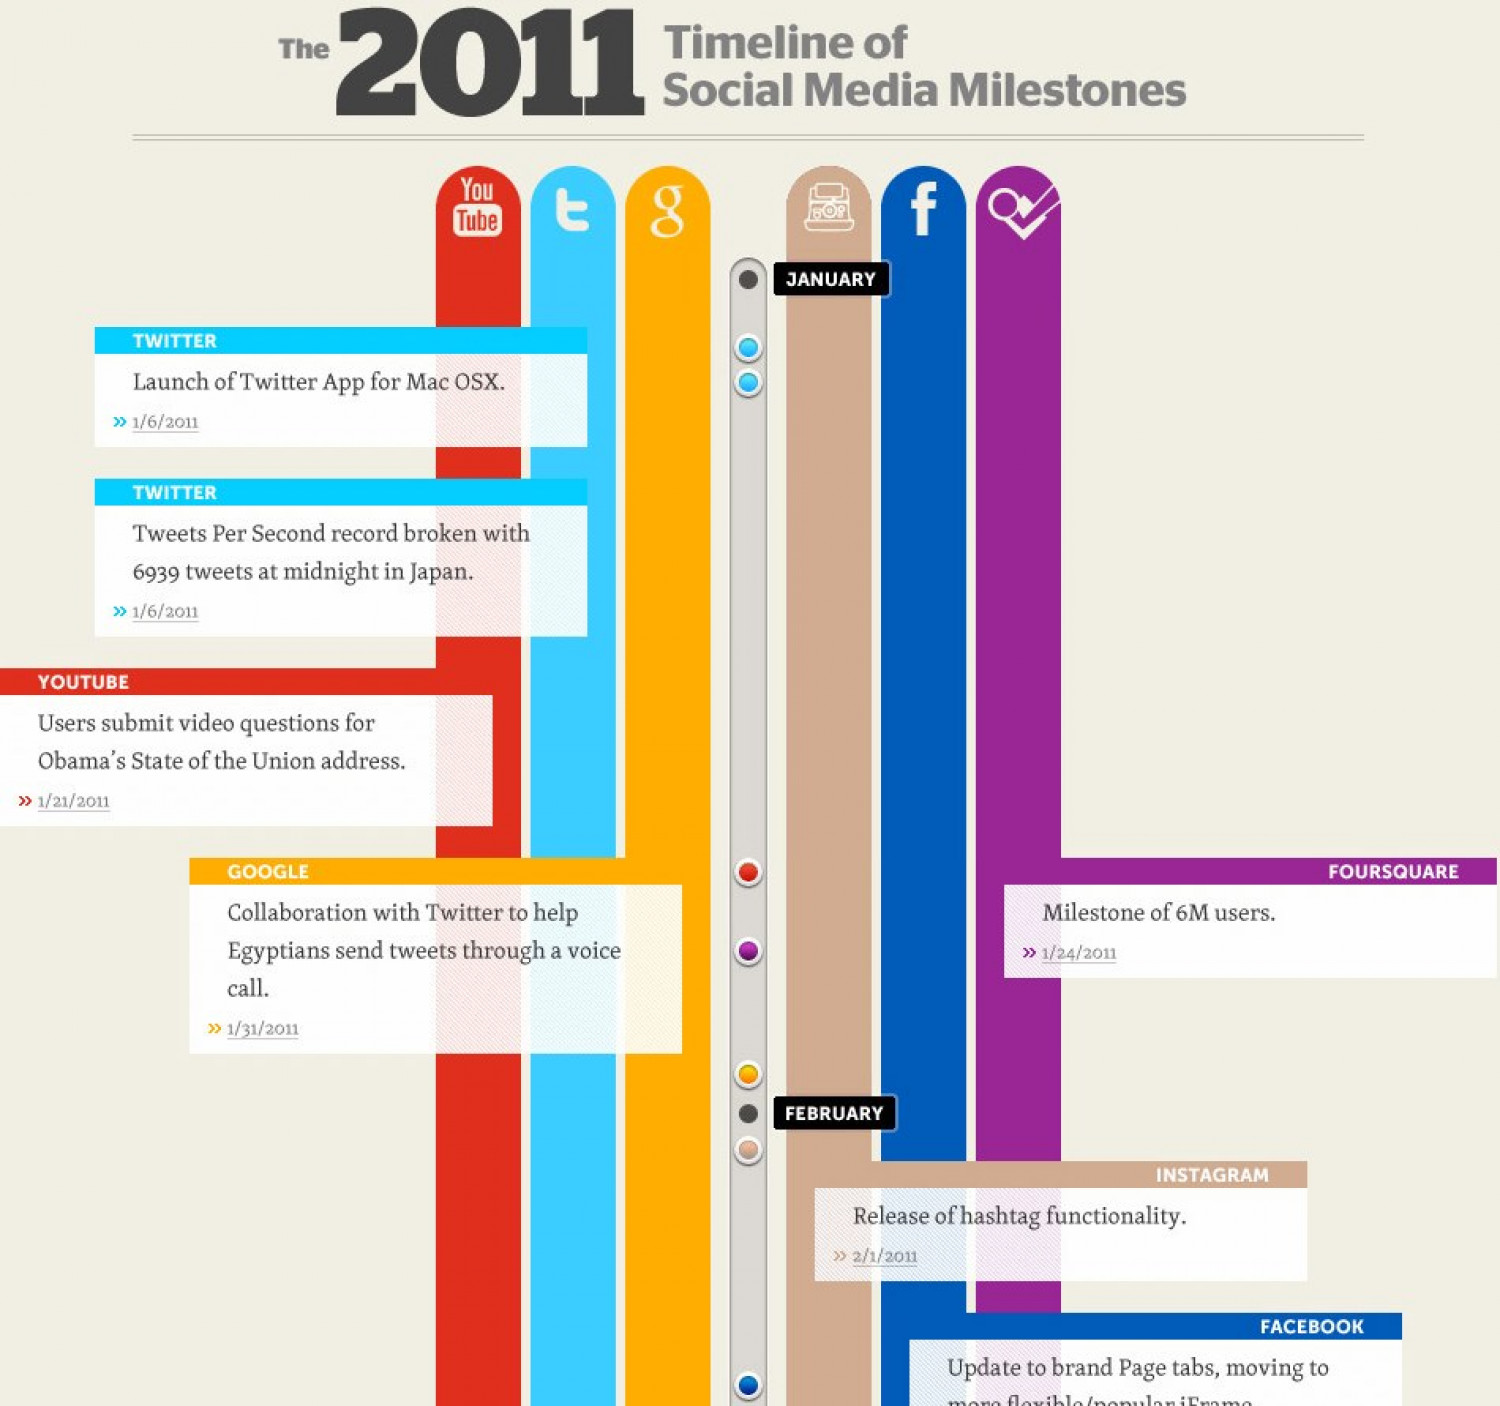 2011 Timeline of Social Media Milestones Infographic